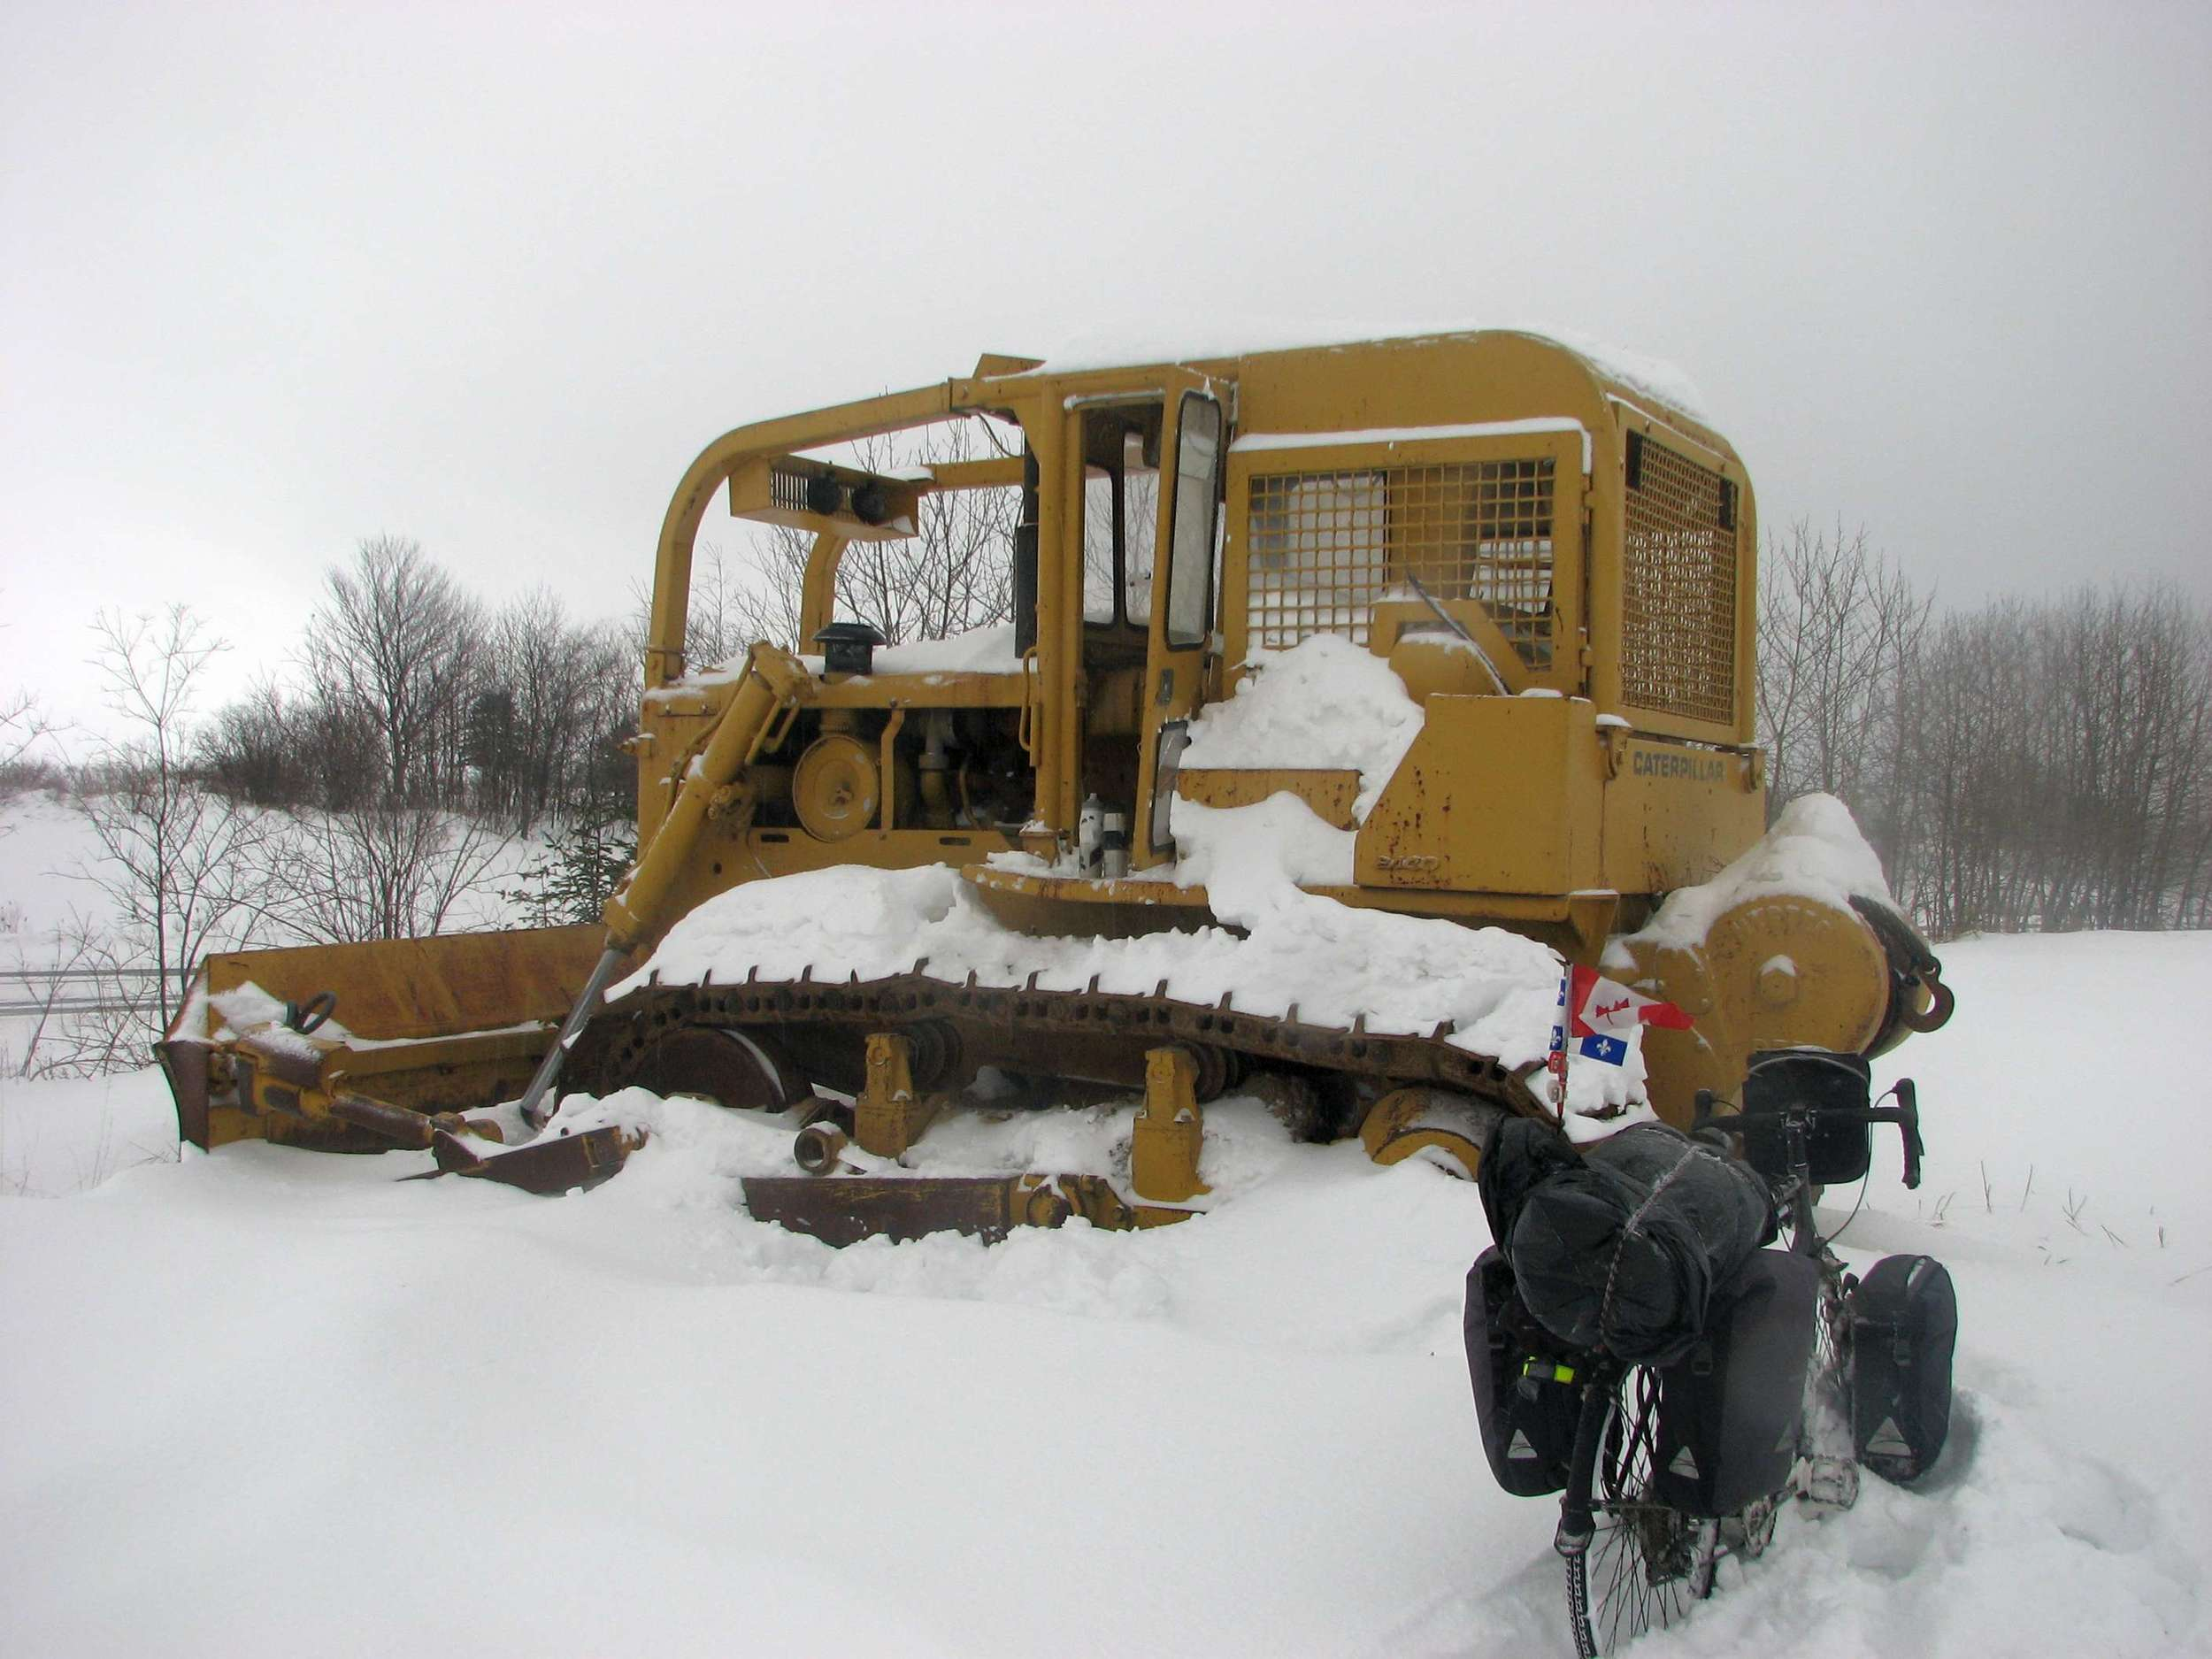 Visiting towns meant a 10+km detour, something I could not afford on such a hard day. I had lunch inside of the tractor.